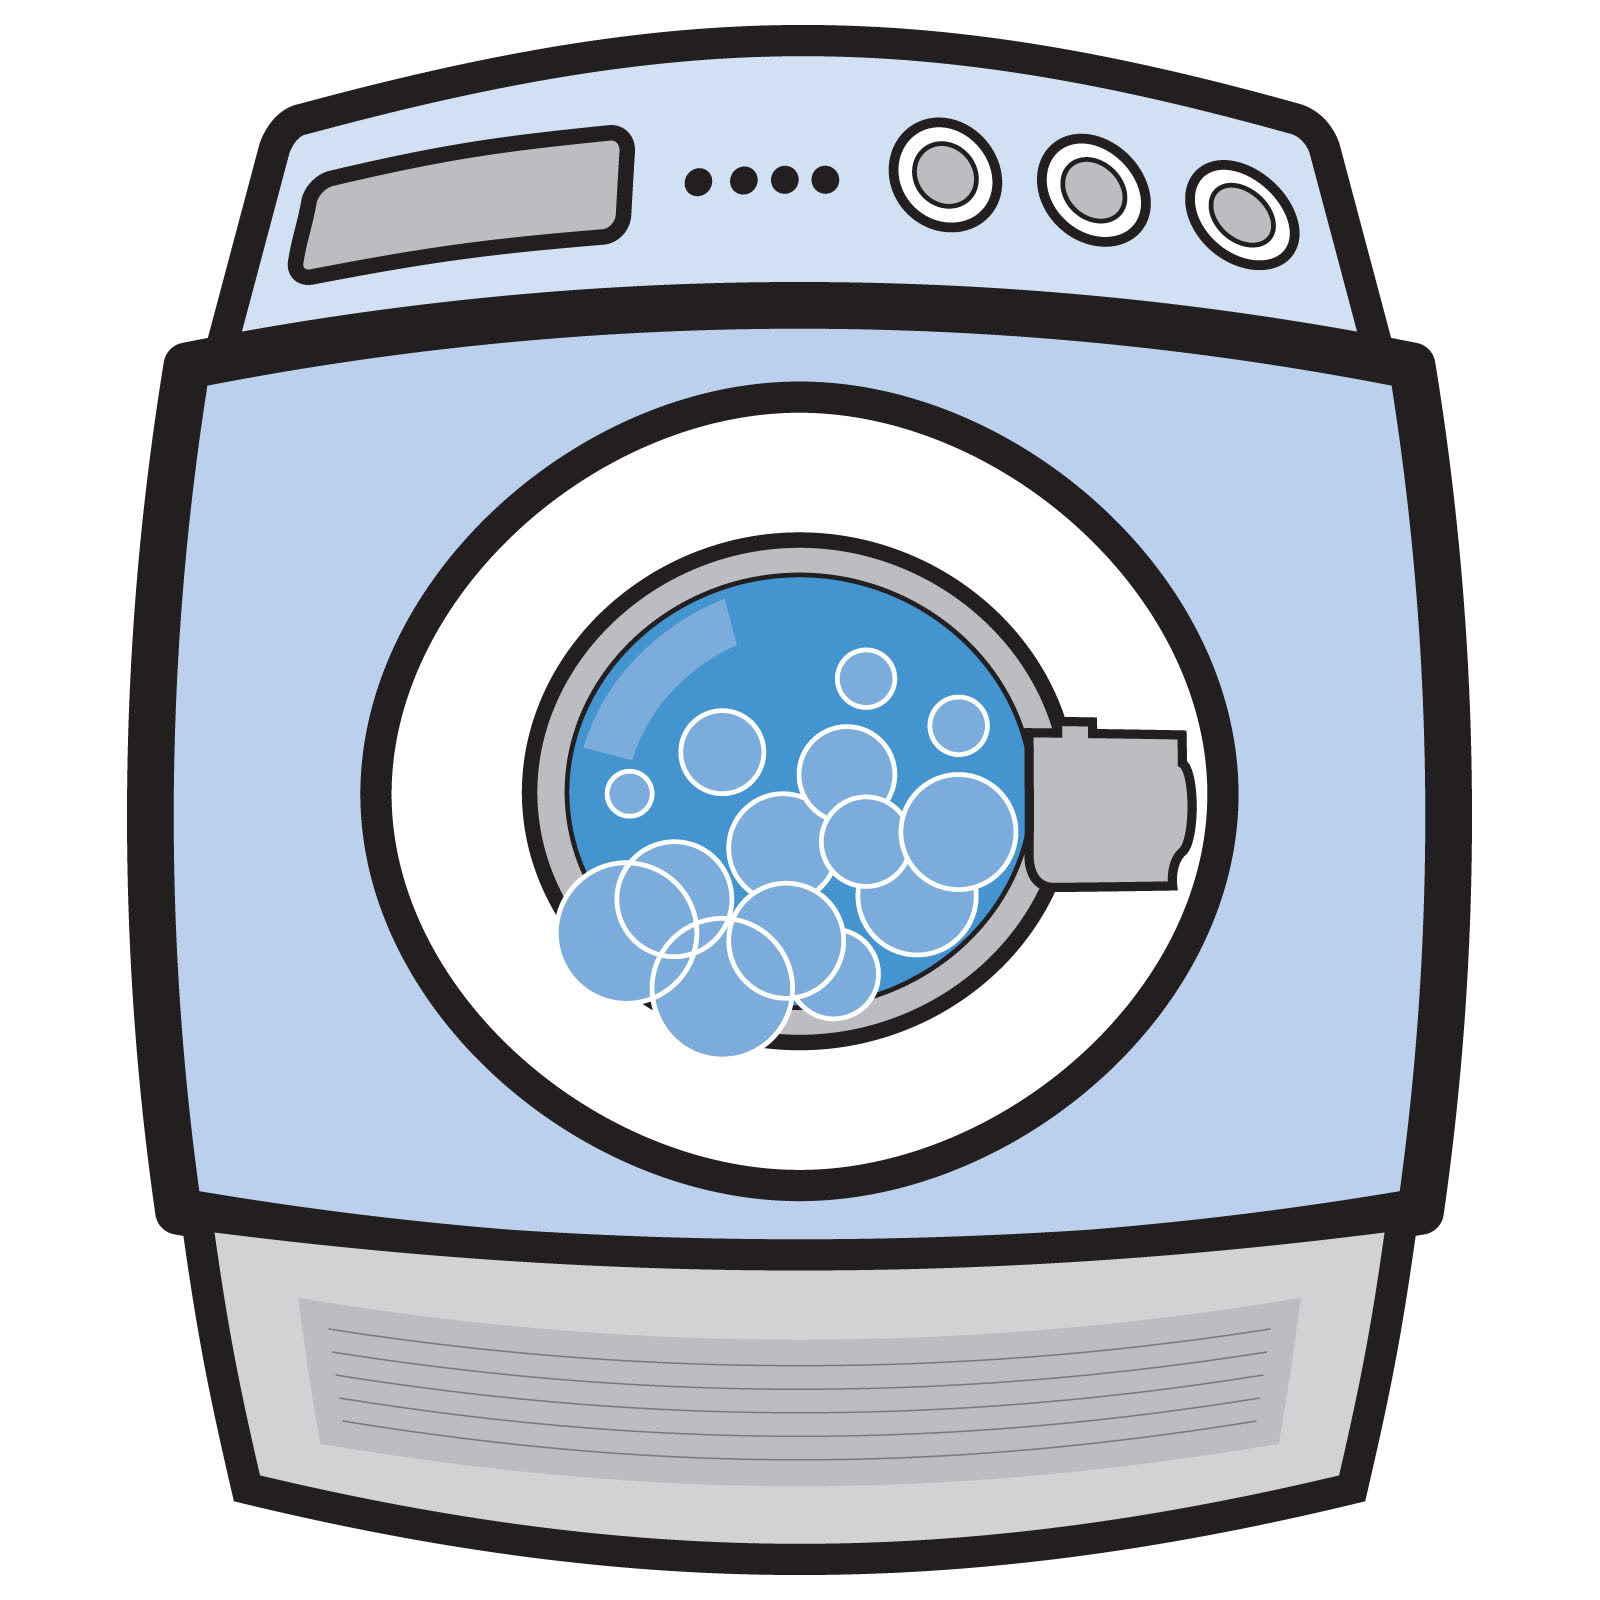 Free Pictures Of A Washing Machine, Download Free Clip Art.